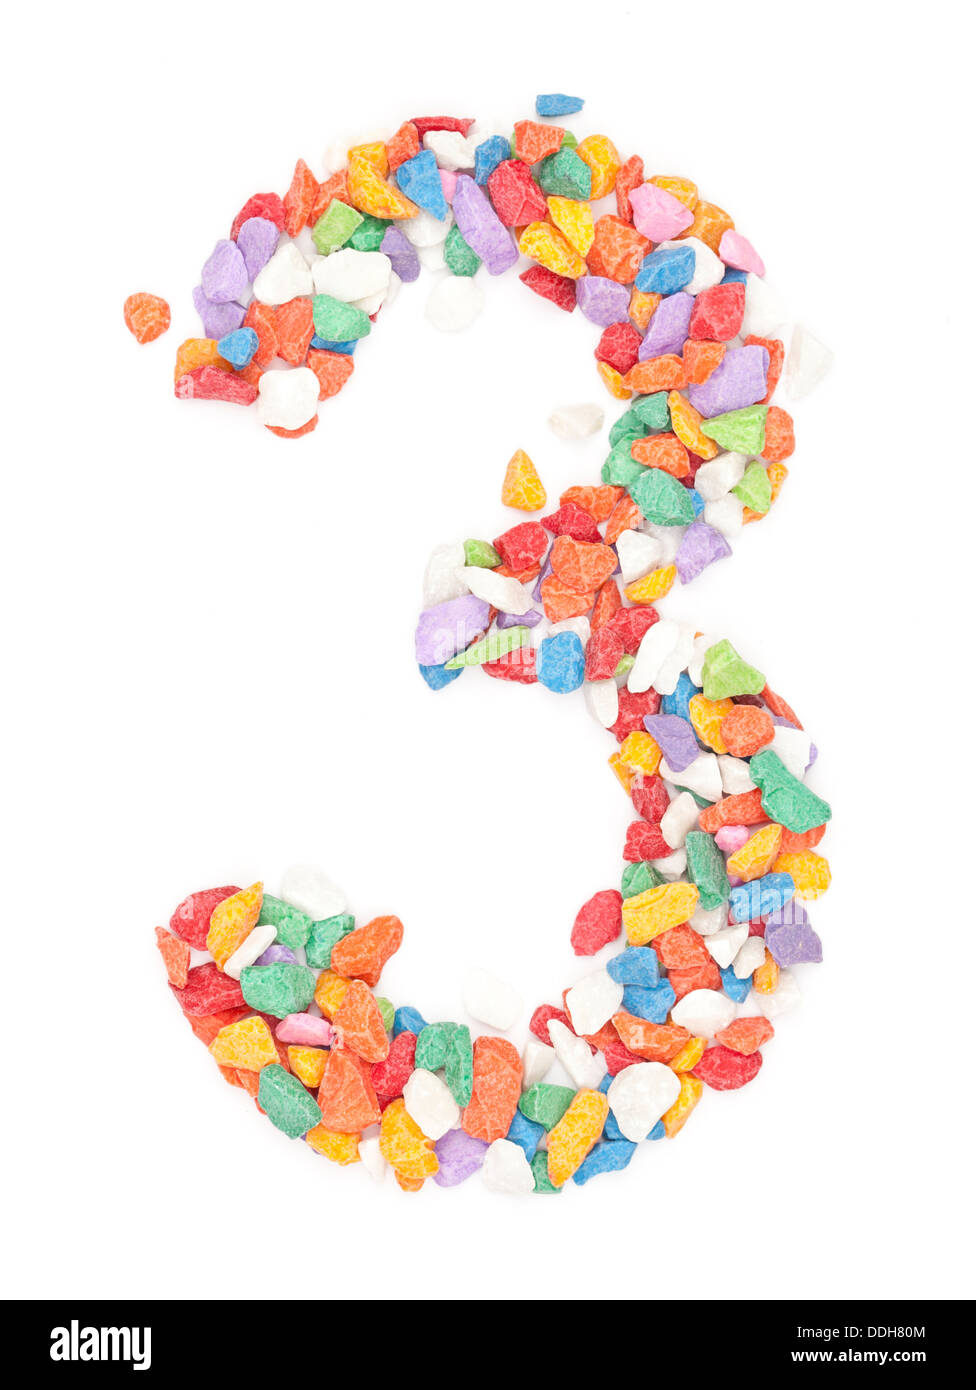 number 3 made form colour ful stone. - Stock Image